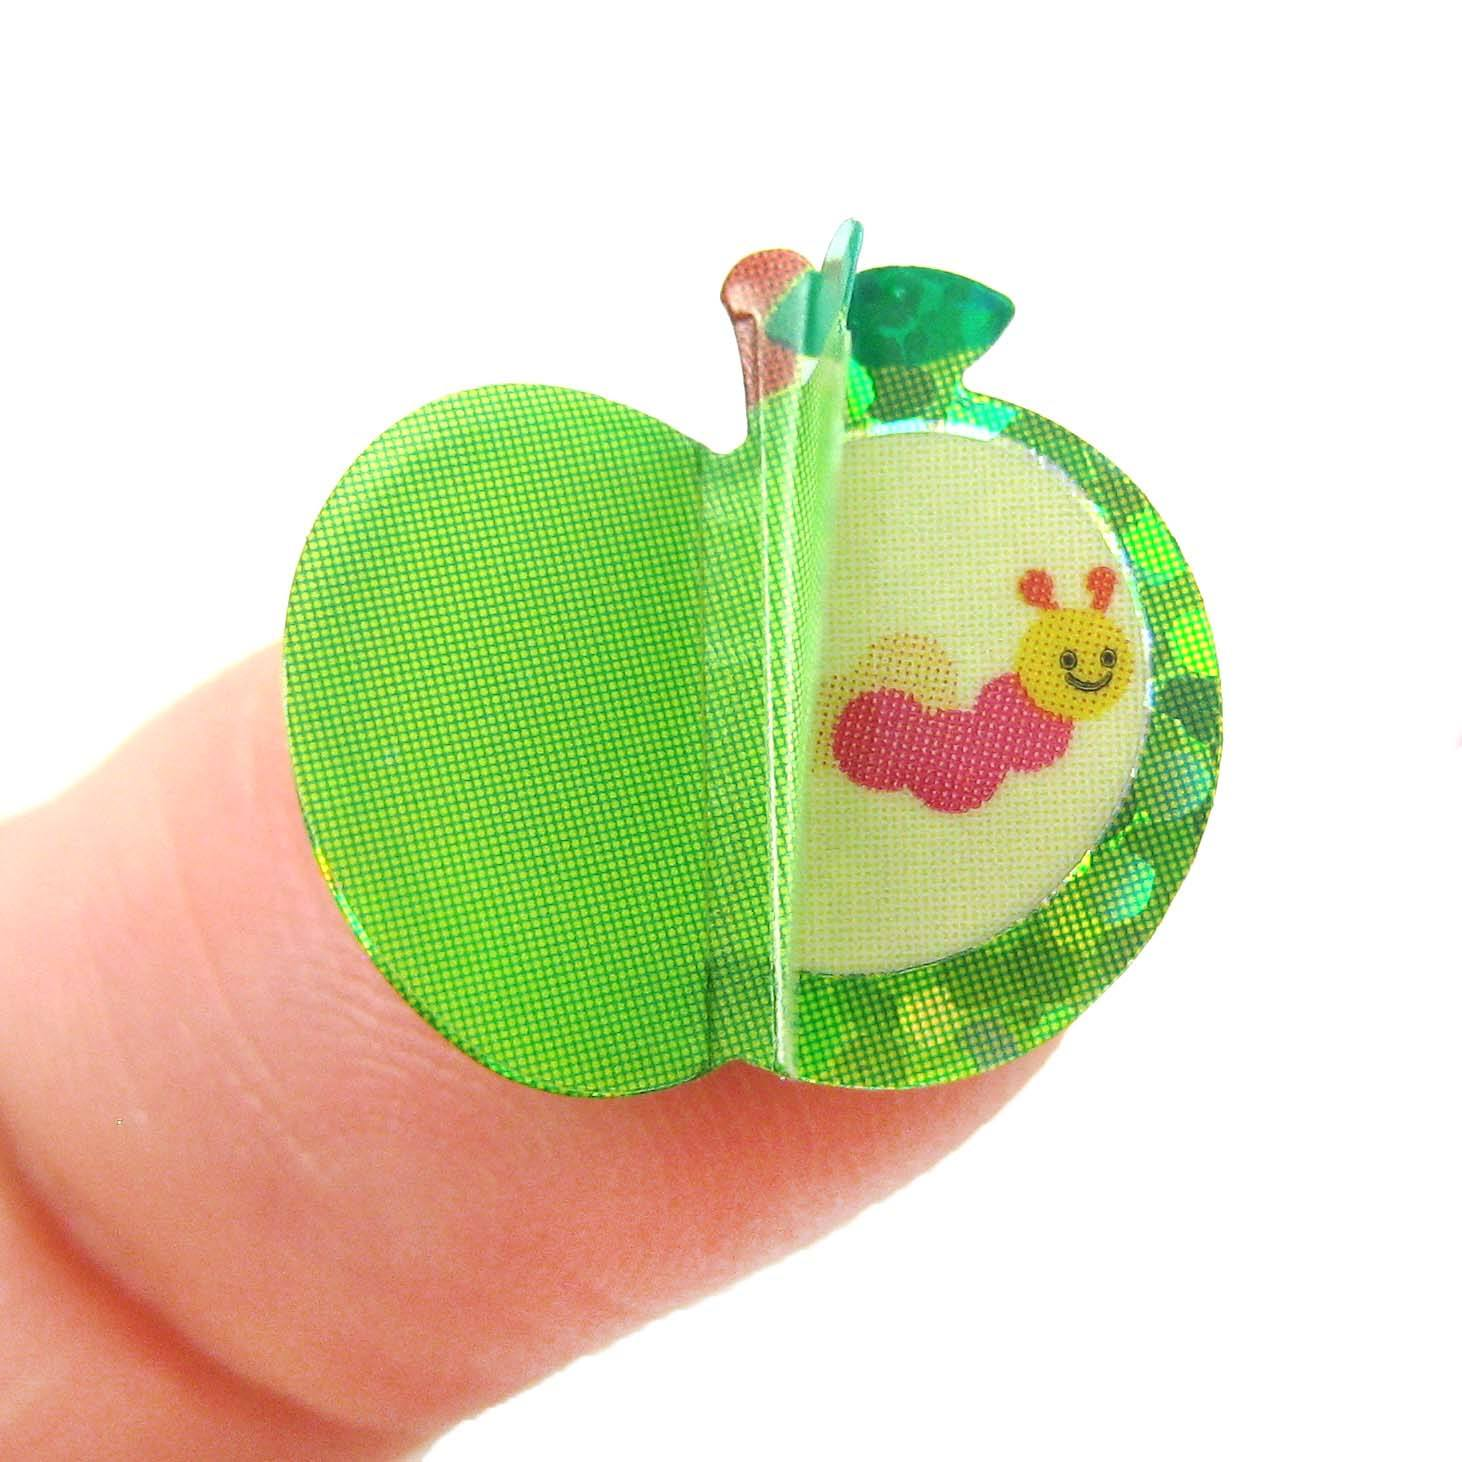 apple-and-caterpillar-shaped-3d-pop-up-stickers-for-scrapbooking-and-decorating